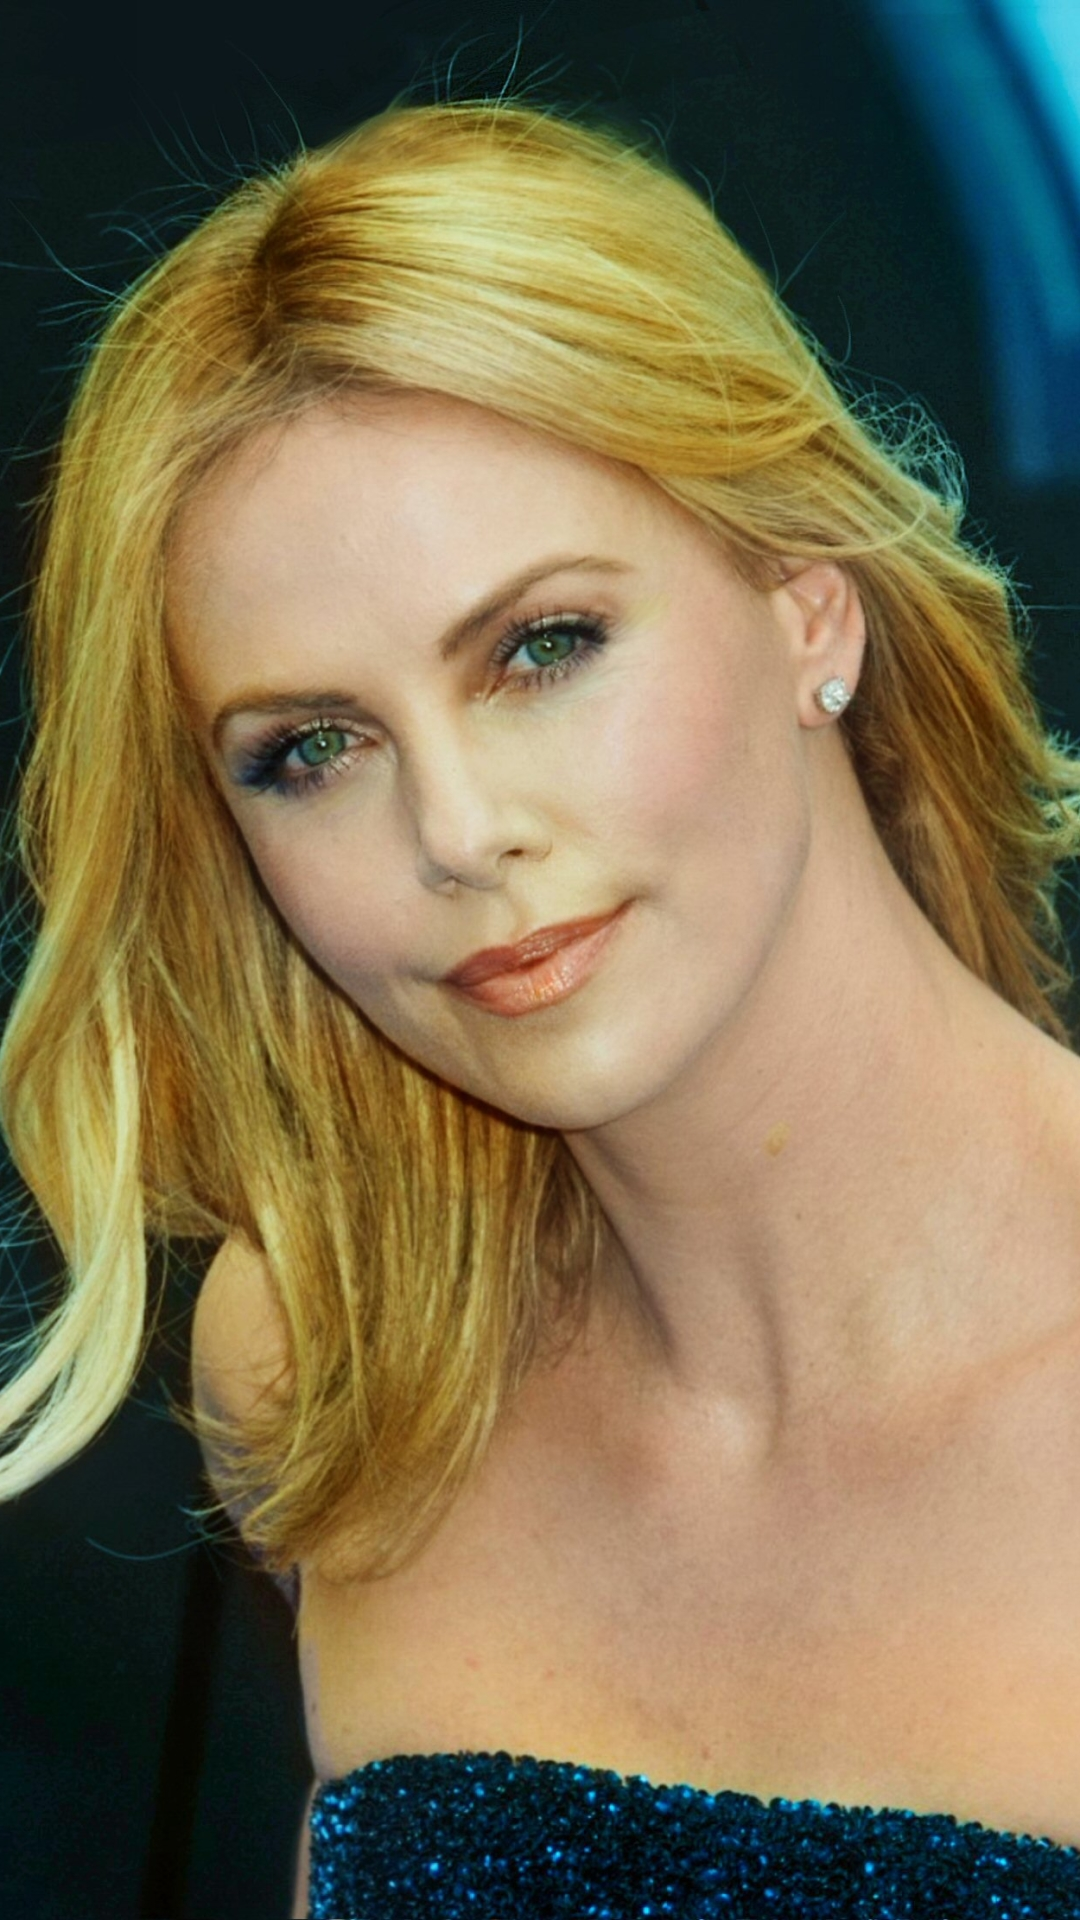 Celebrity Charlize Theron 1080x1920 Wallpaper ID 591739